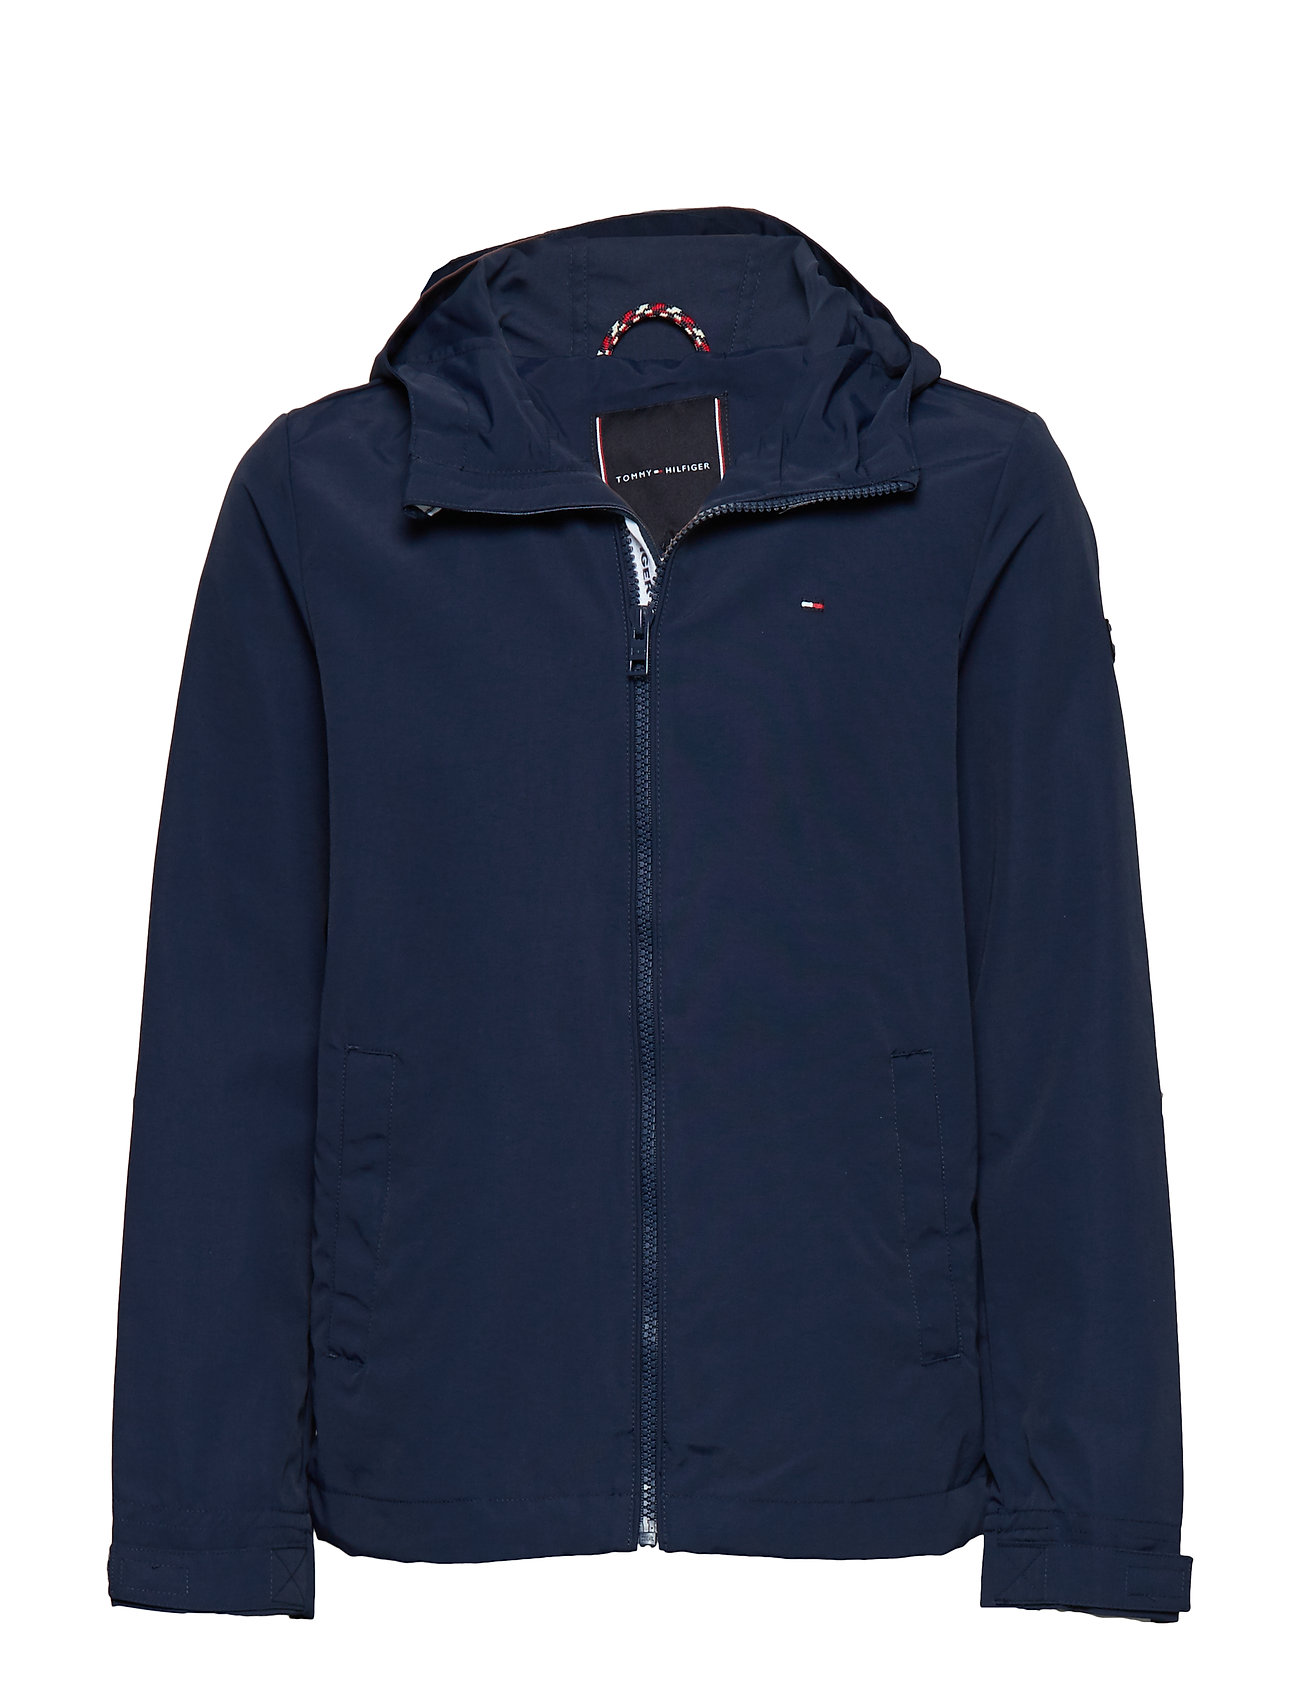 Tommy Hilfiger PACKABLE HOODED JACKET - BLACK IRIS